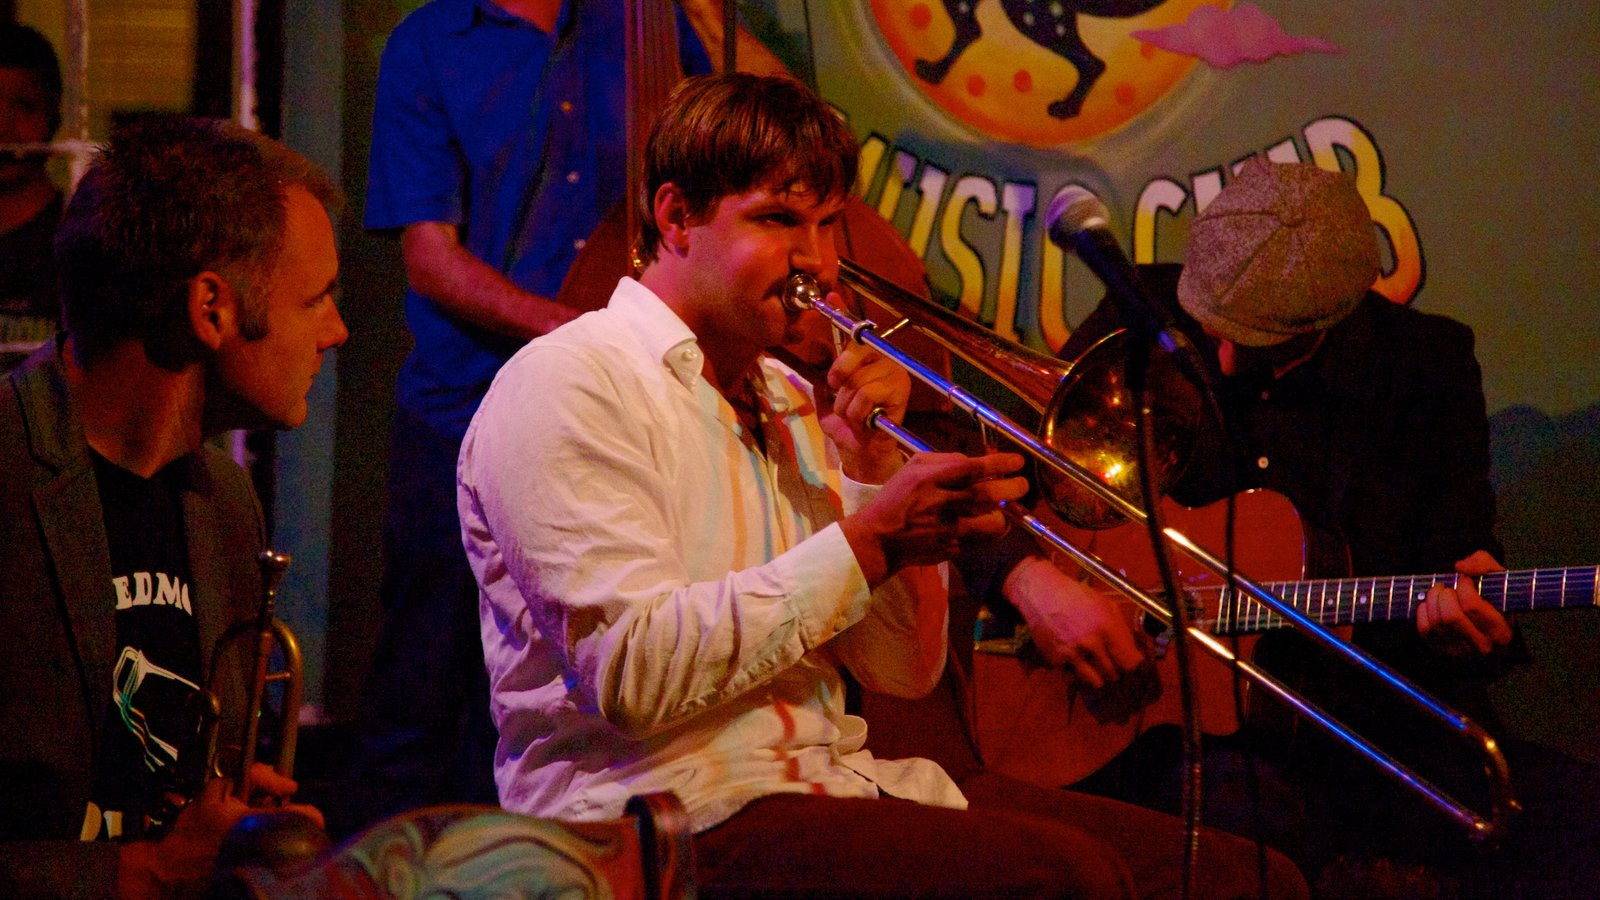 Frenchmen Street Jazz Clubs showing music, performance art and interior views